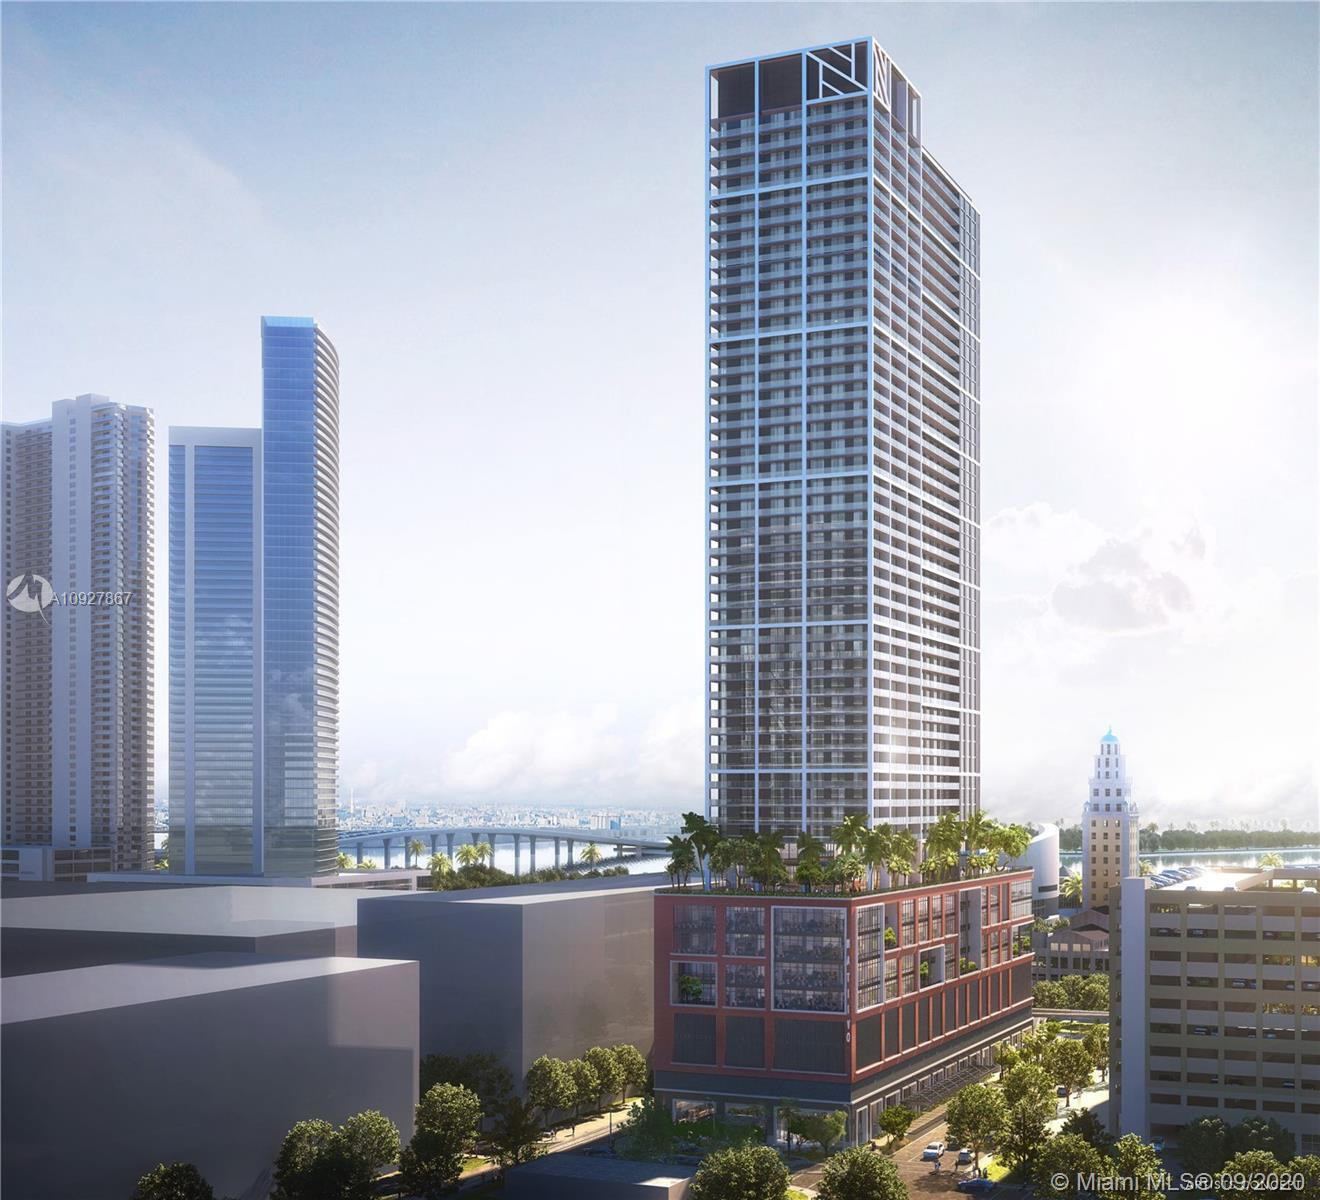 **PRE-CONSTRUCTION** Natiivo Miami is the first purposely designed, built and licensed building for